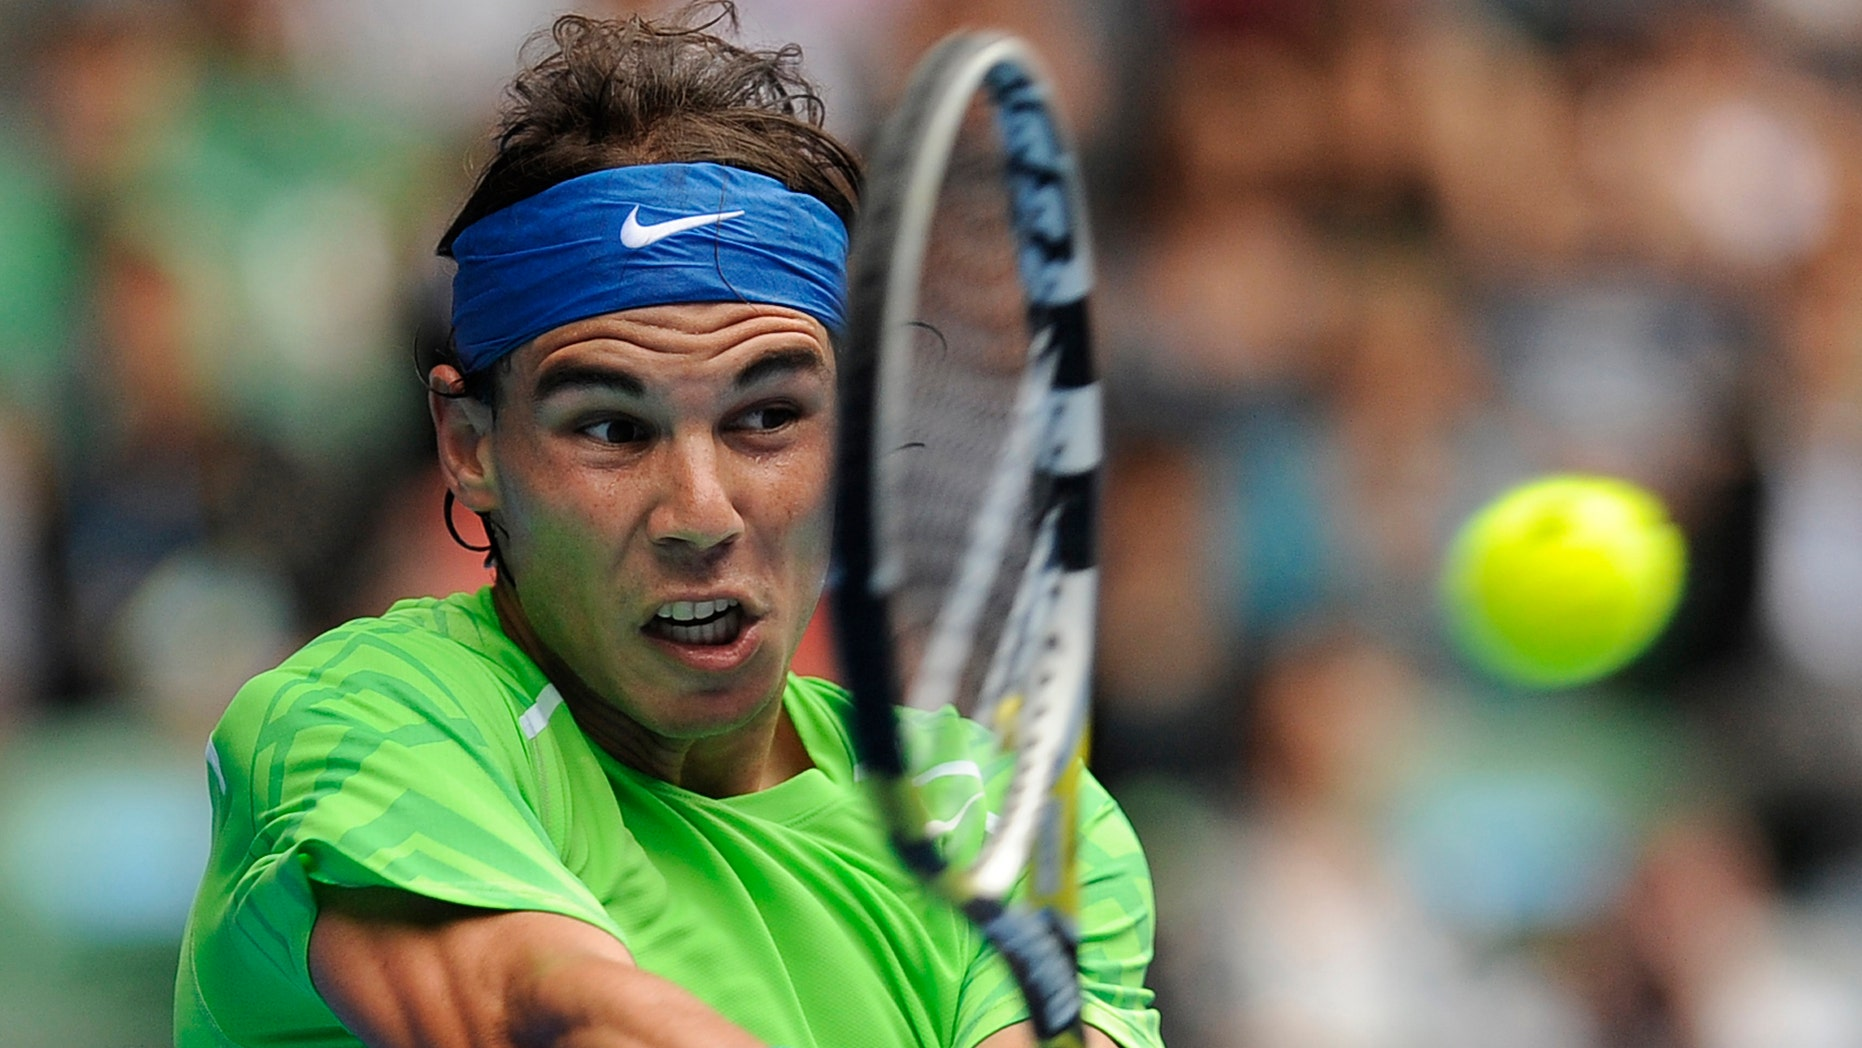 Spain's Rafael Nadal makes a backhand return to Slovakia's Lukas Lacko during their third round match at the Australian Open tennis championship, in Melbourne, Australia, Friday, Jan. 20, 2012. (AP Photo/Andrew Brownbill)